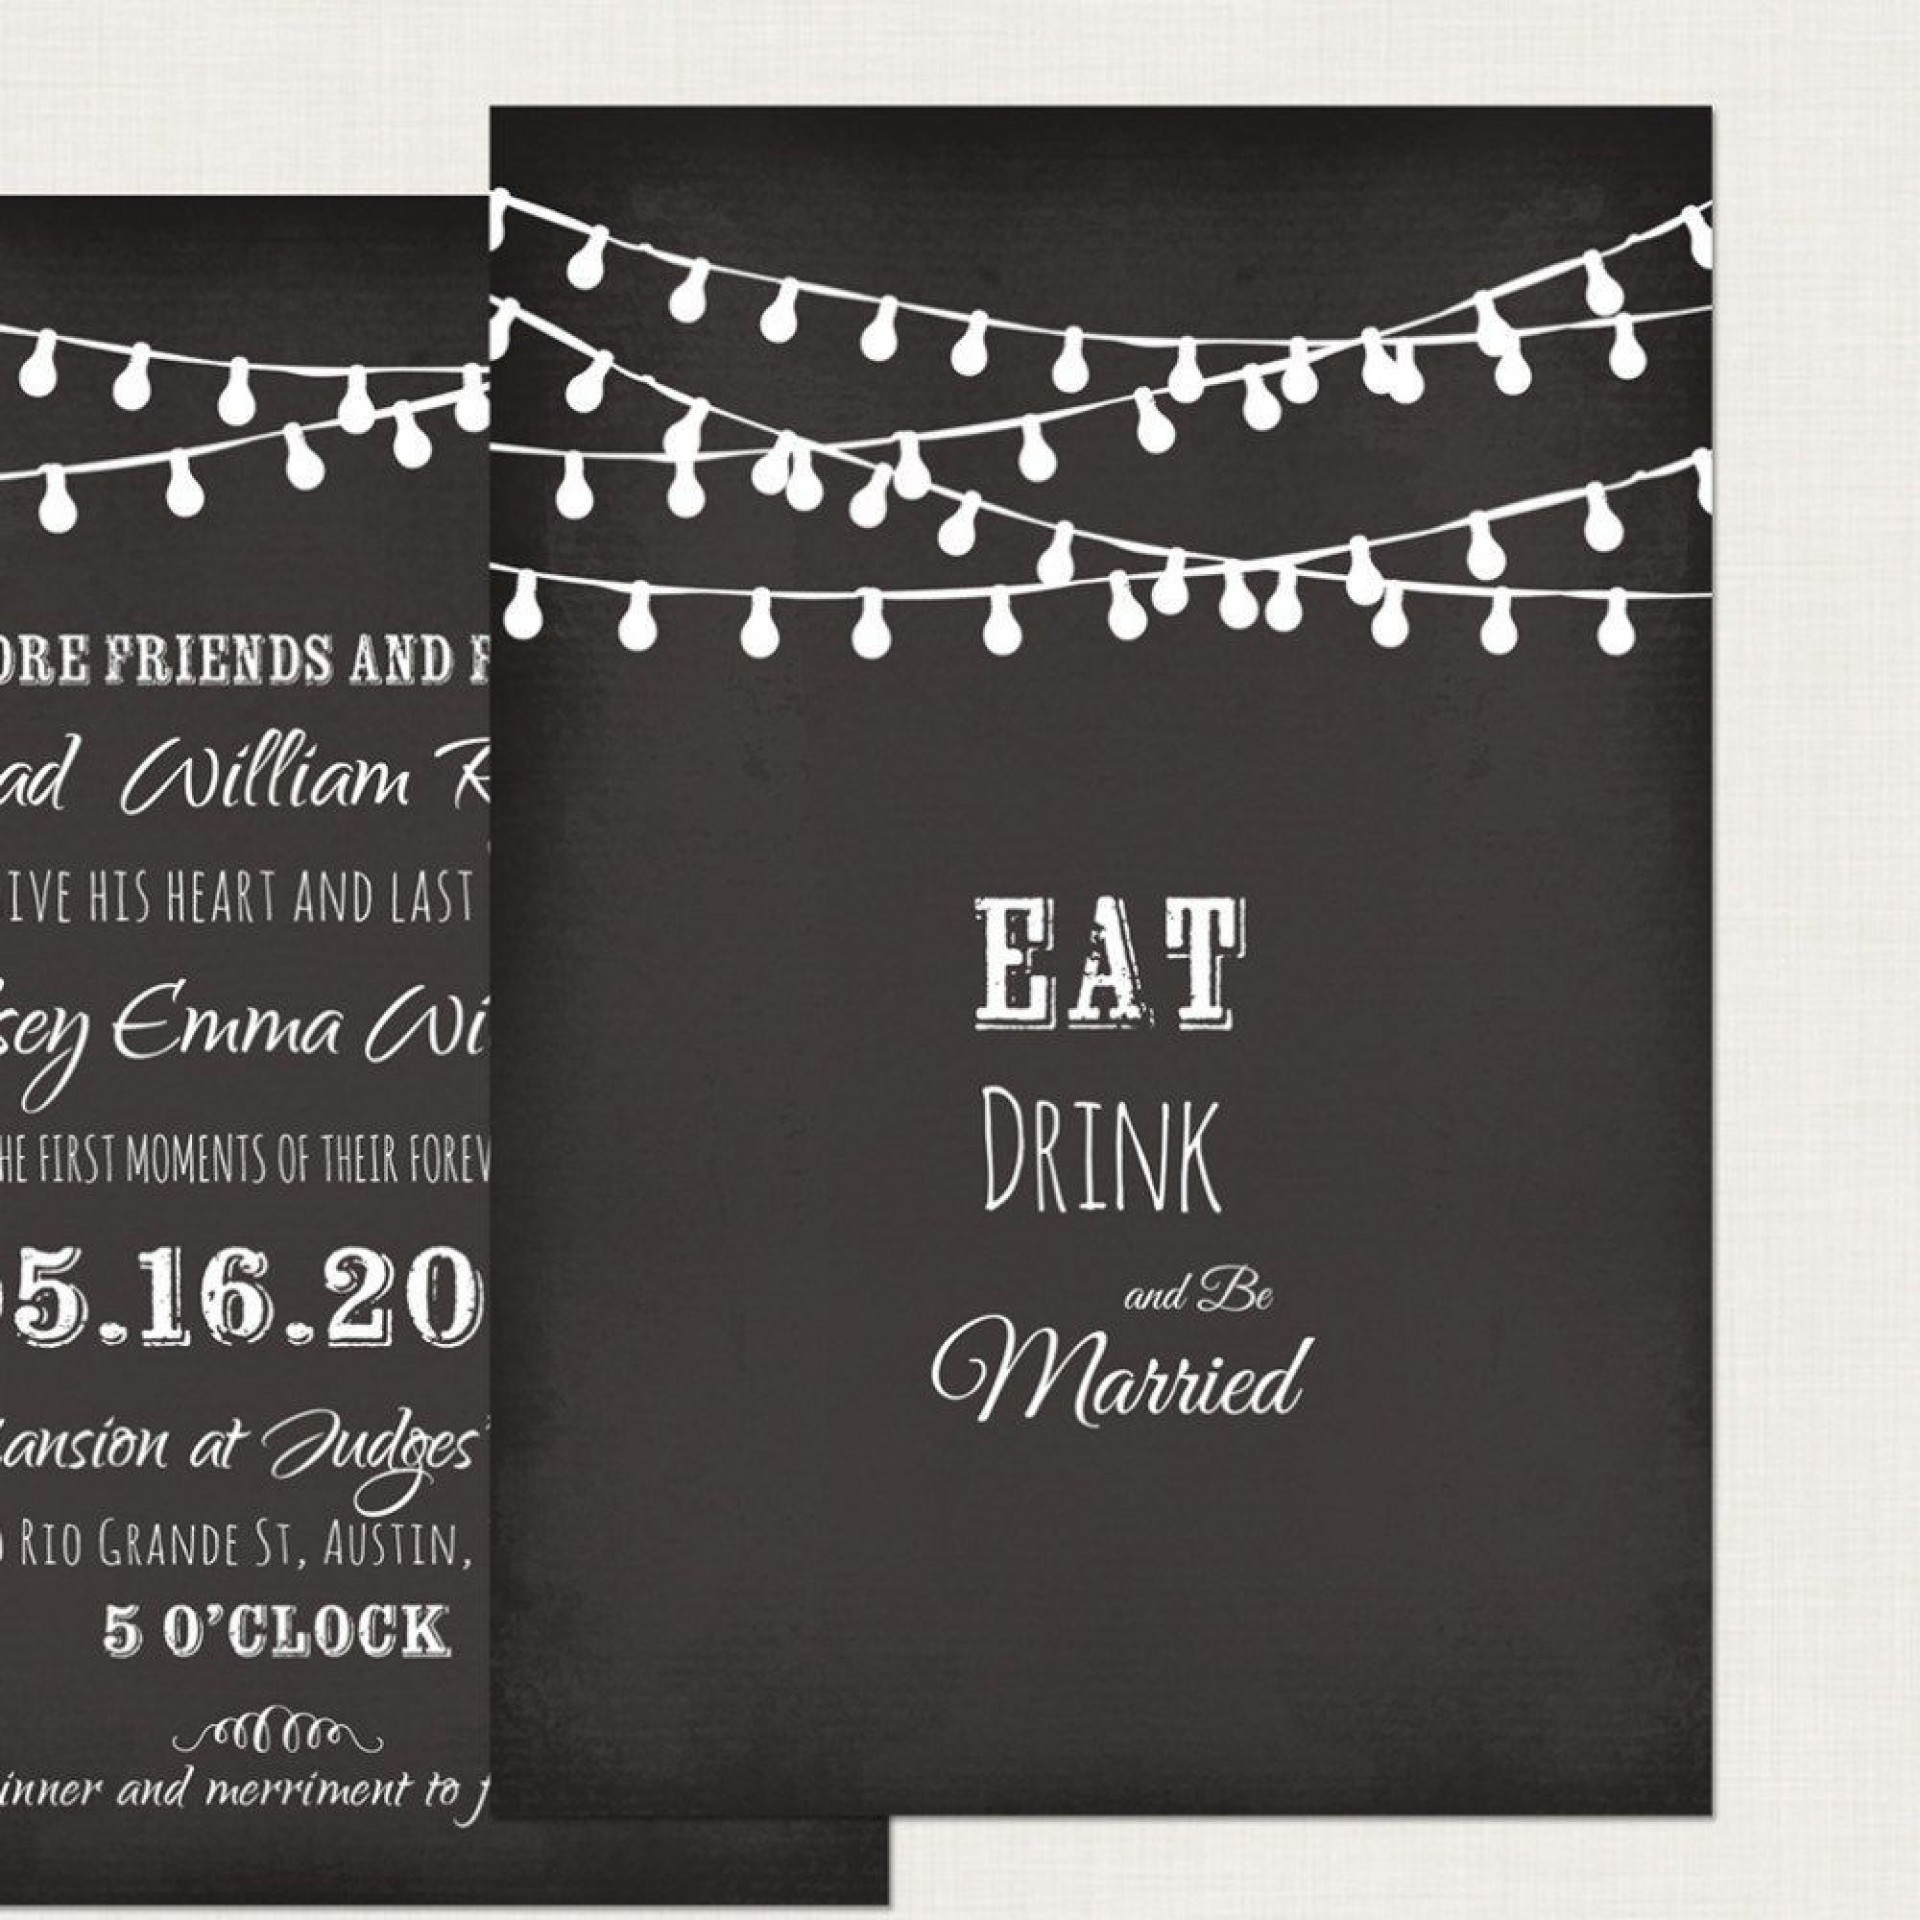 002 Impressive Chalkboard Invitation Template Free High Definition  Download Wedding1920